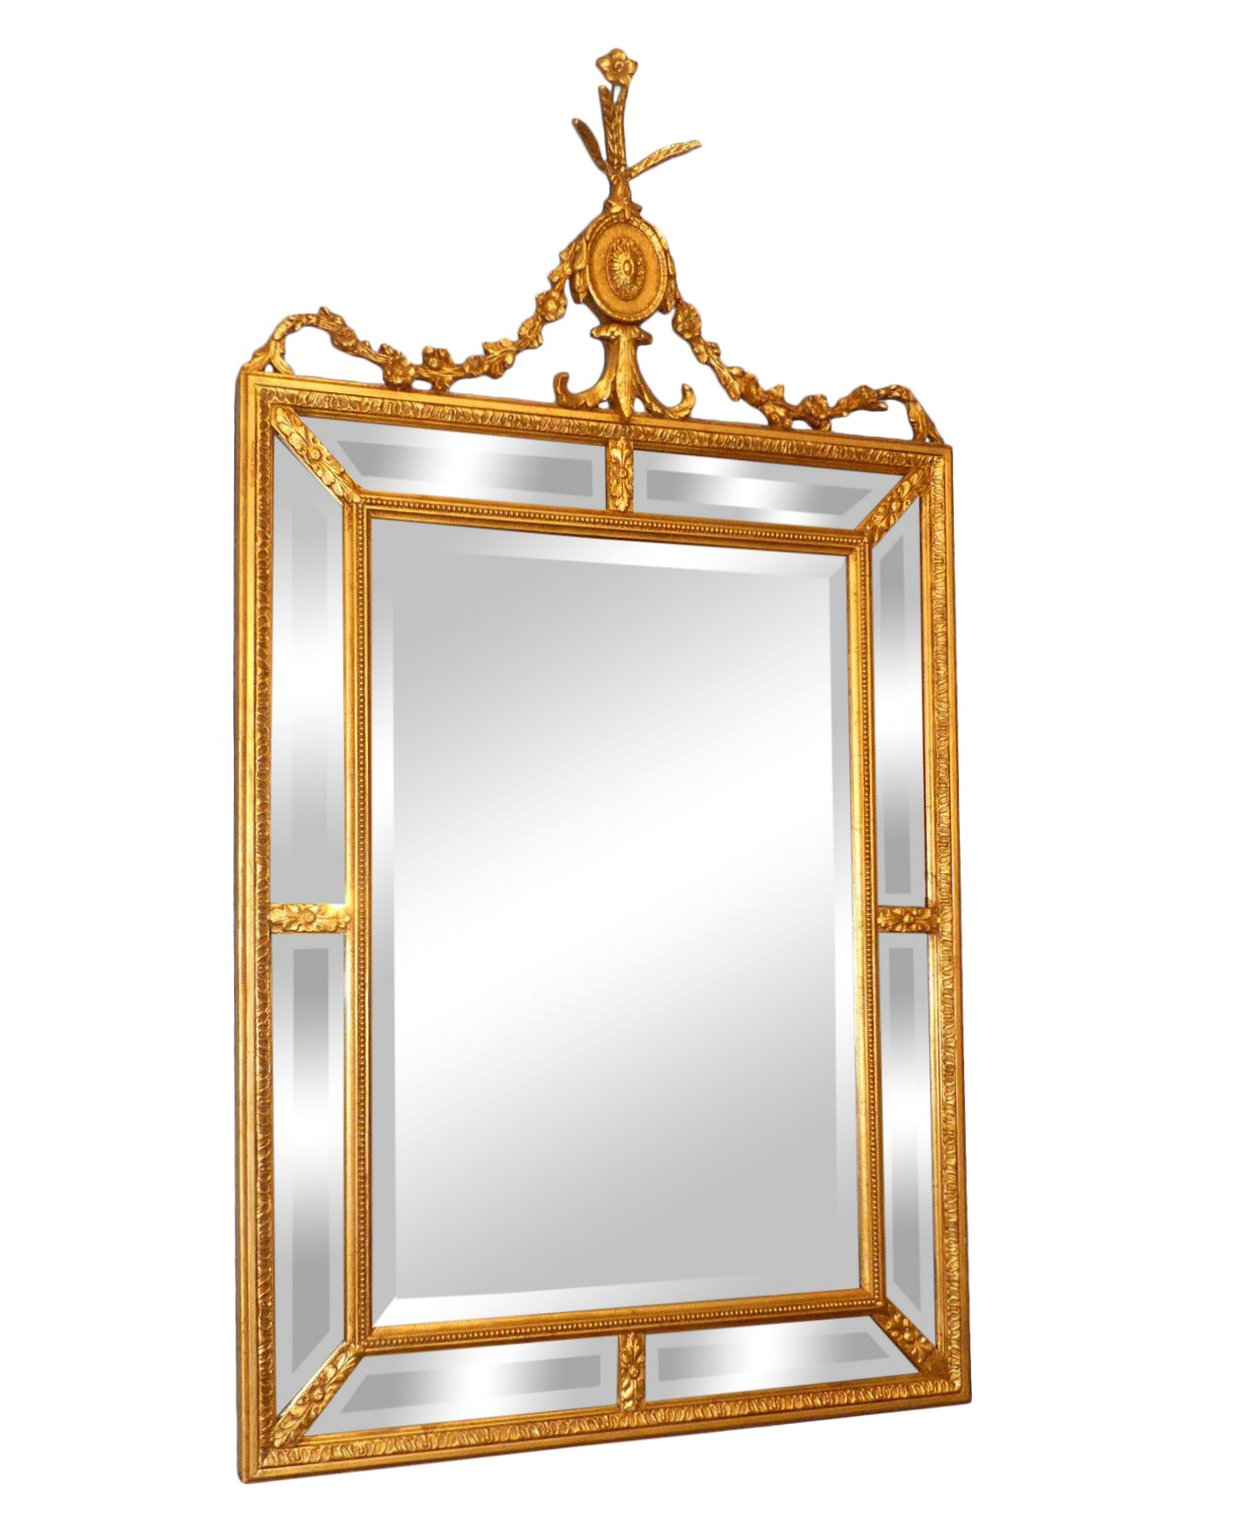 Giltwood Mirror with Beveled Mirror Panels 32x58 $795